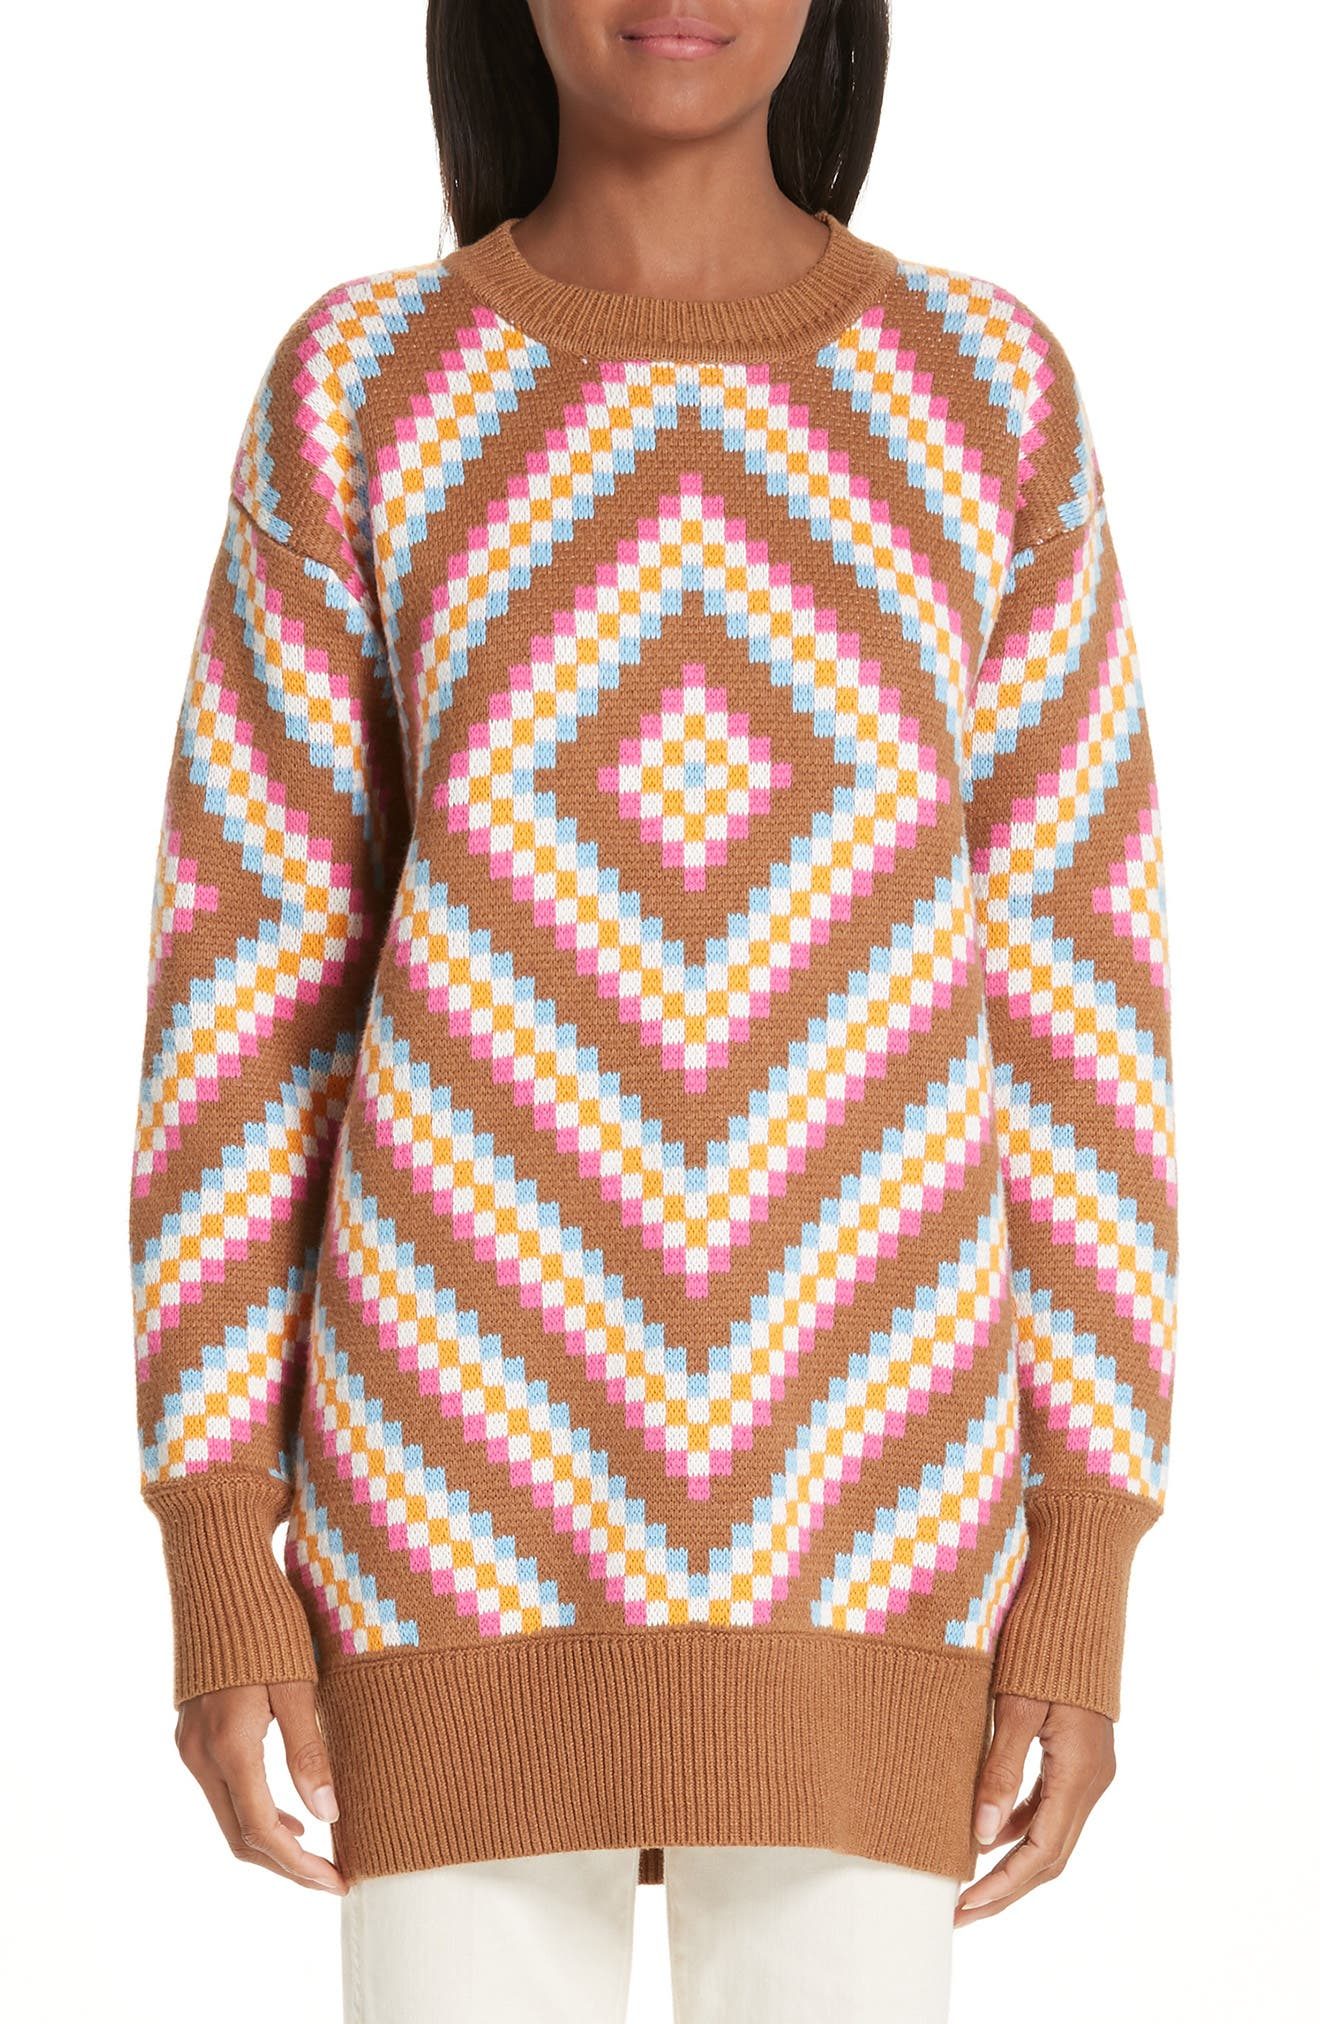 VICTOR GLEMAUD Diamond Patterned Sweater in Sand And Pink Combo